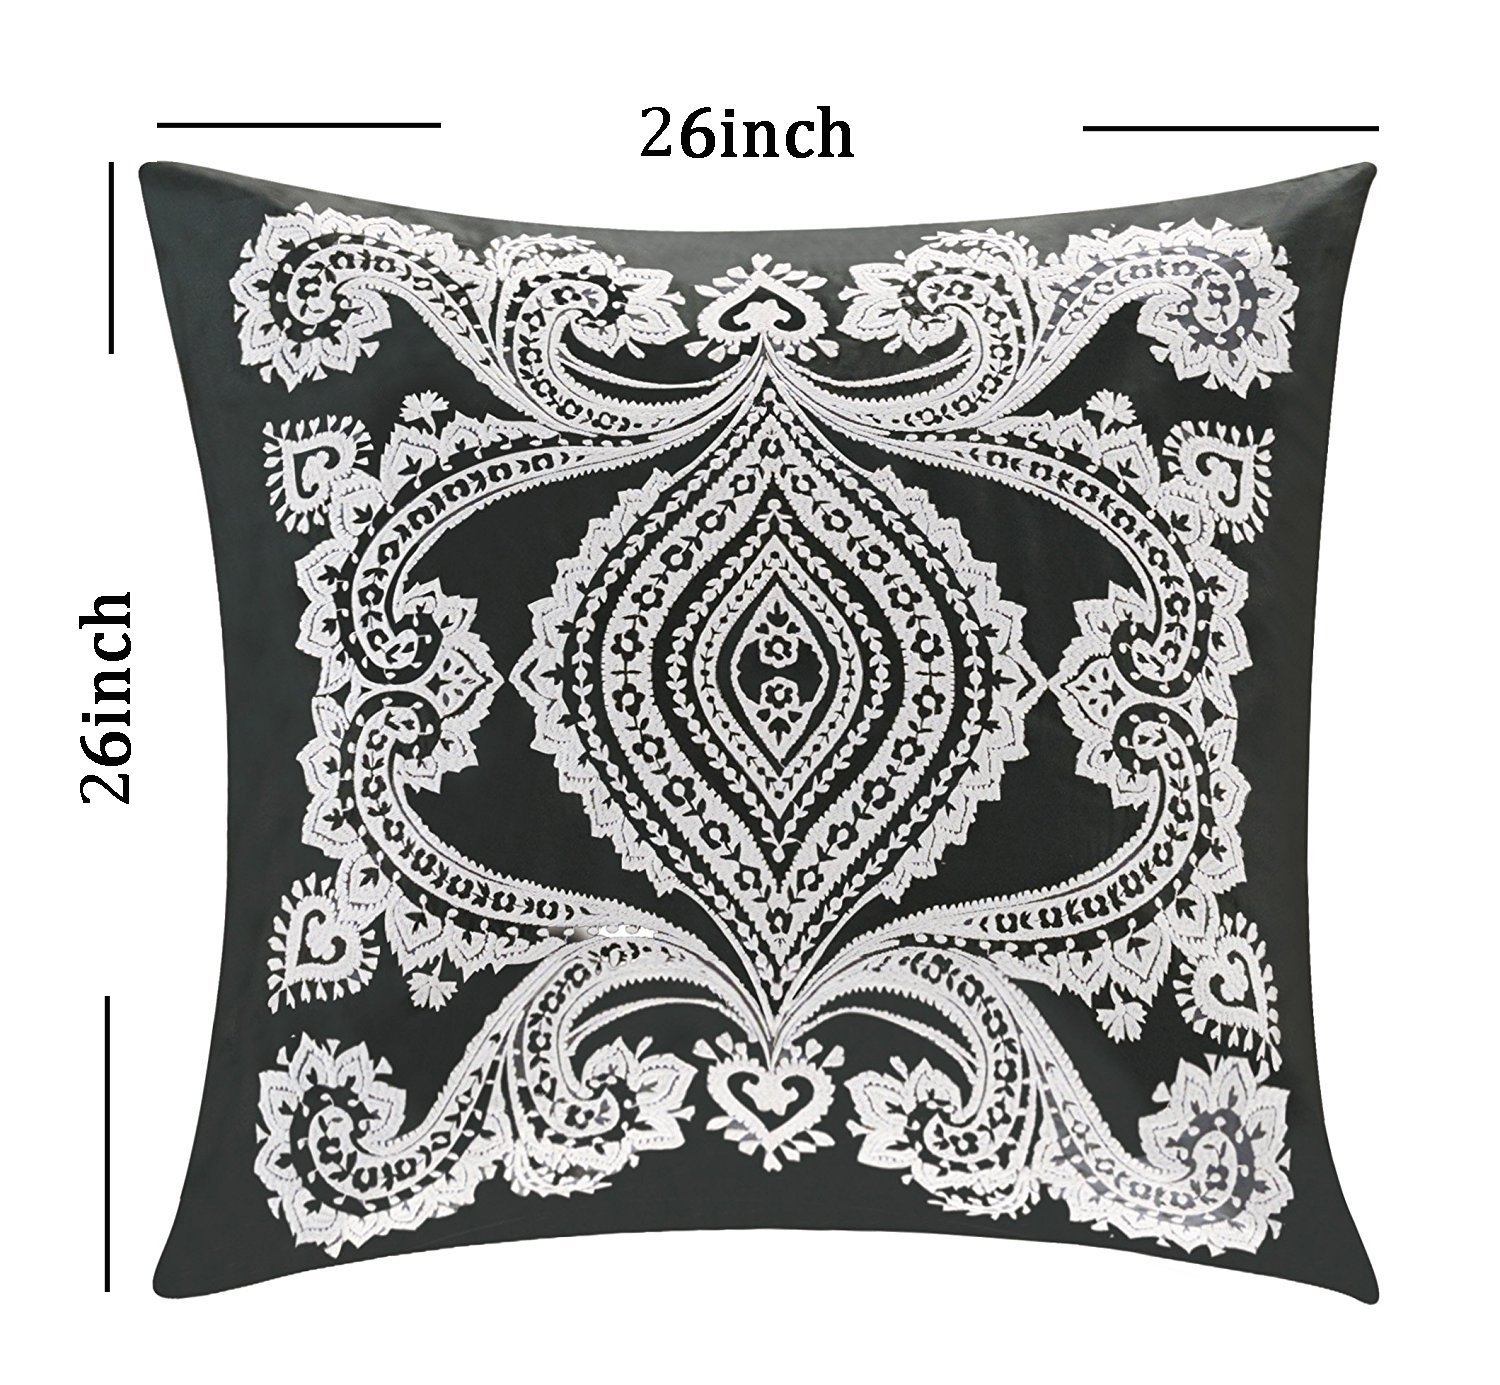 Organic Cotton Embroidered Cushion Cover Euro Pillow